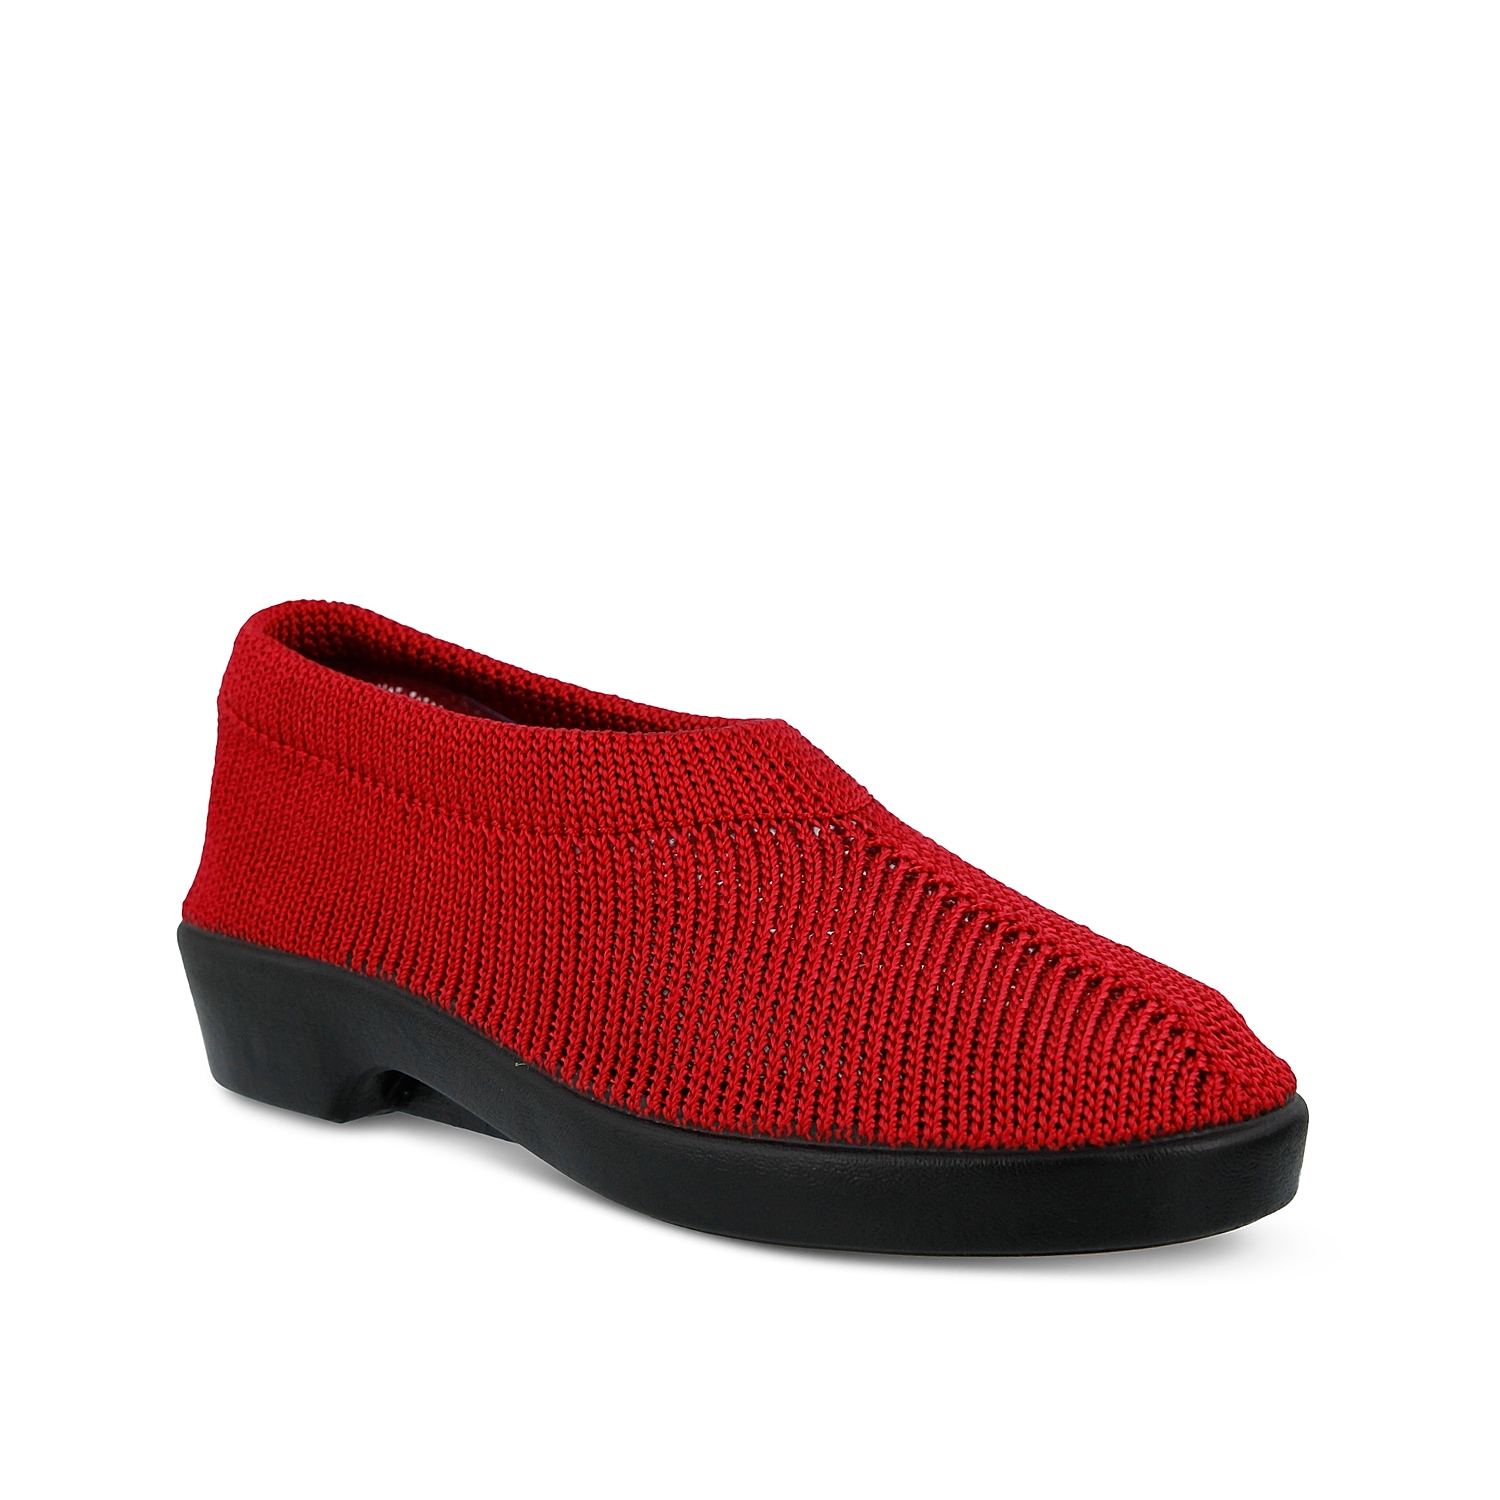 This naturally soft, light and breathable slip-on will be your best bet for casual footwear! The Spring Step Tender is a knit stretch wedge that you will choose again and again.